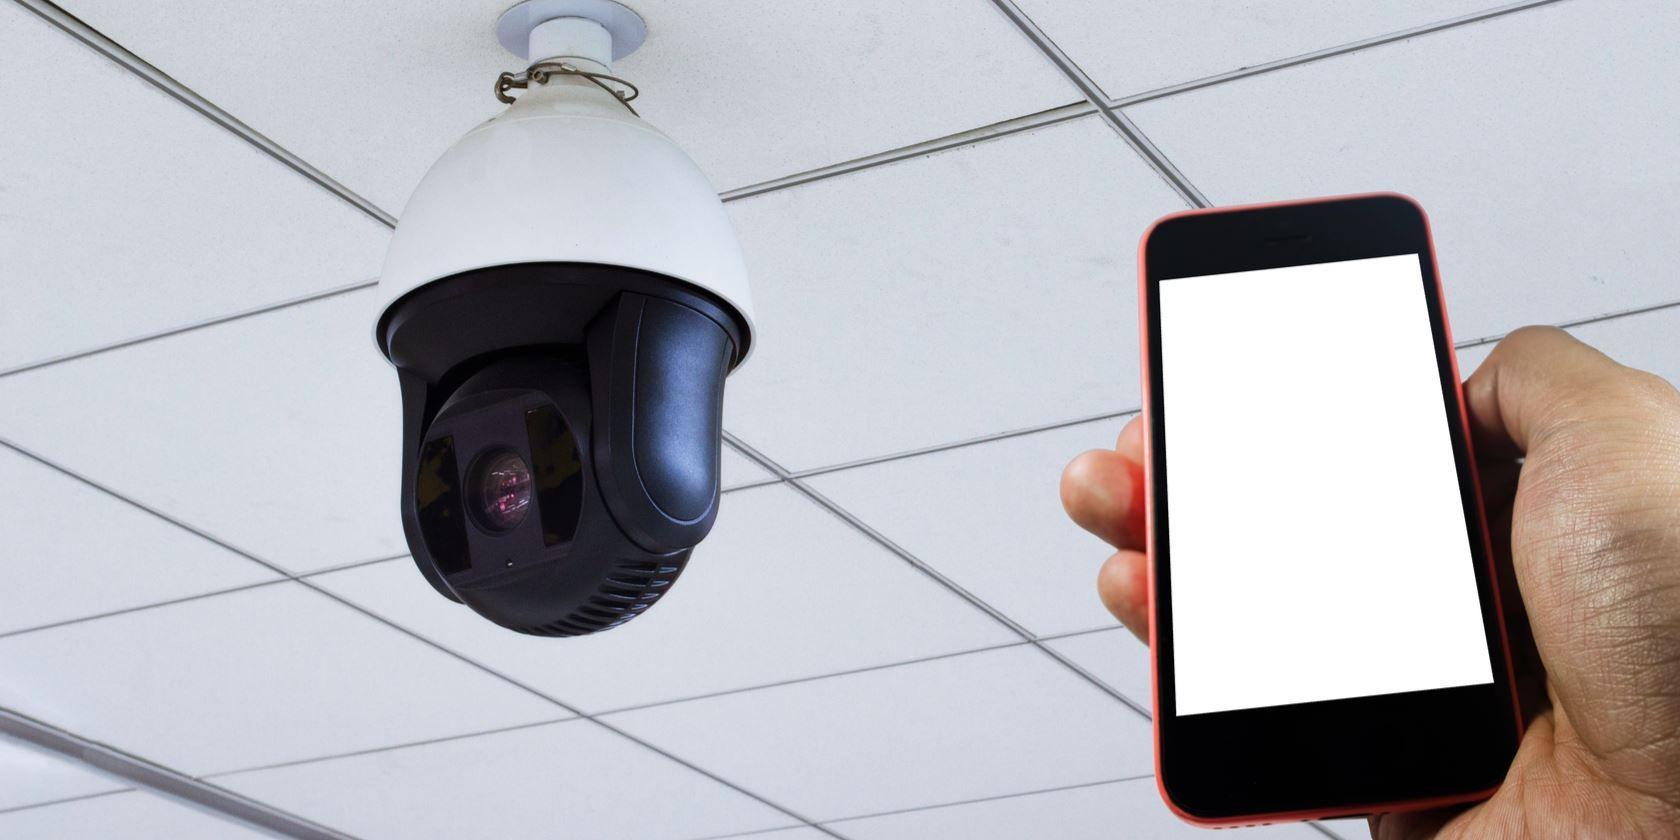 Use Your Old Android Phone As a Security / Surveillance Webcam